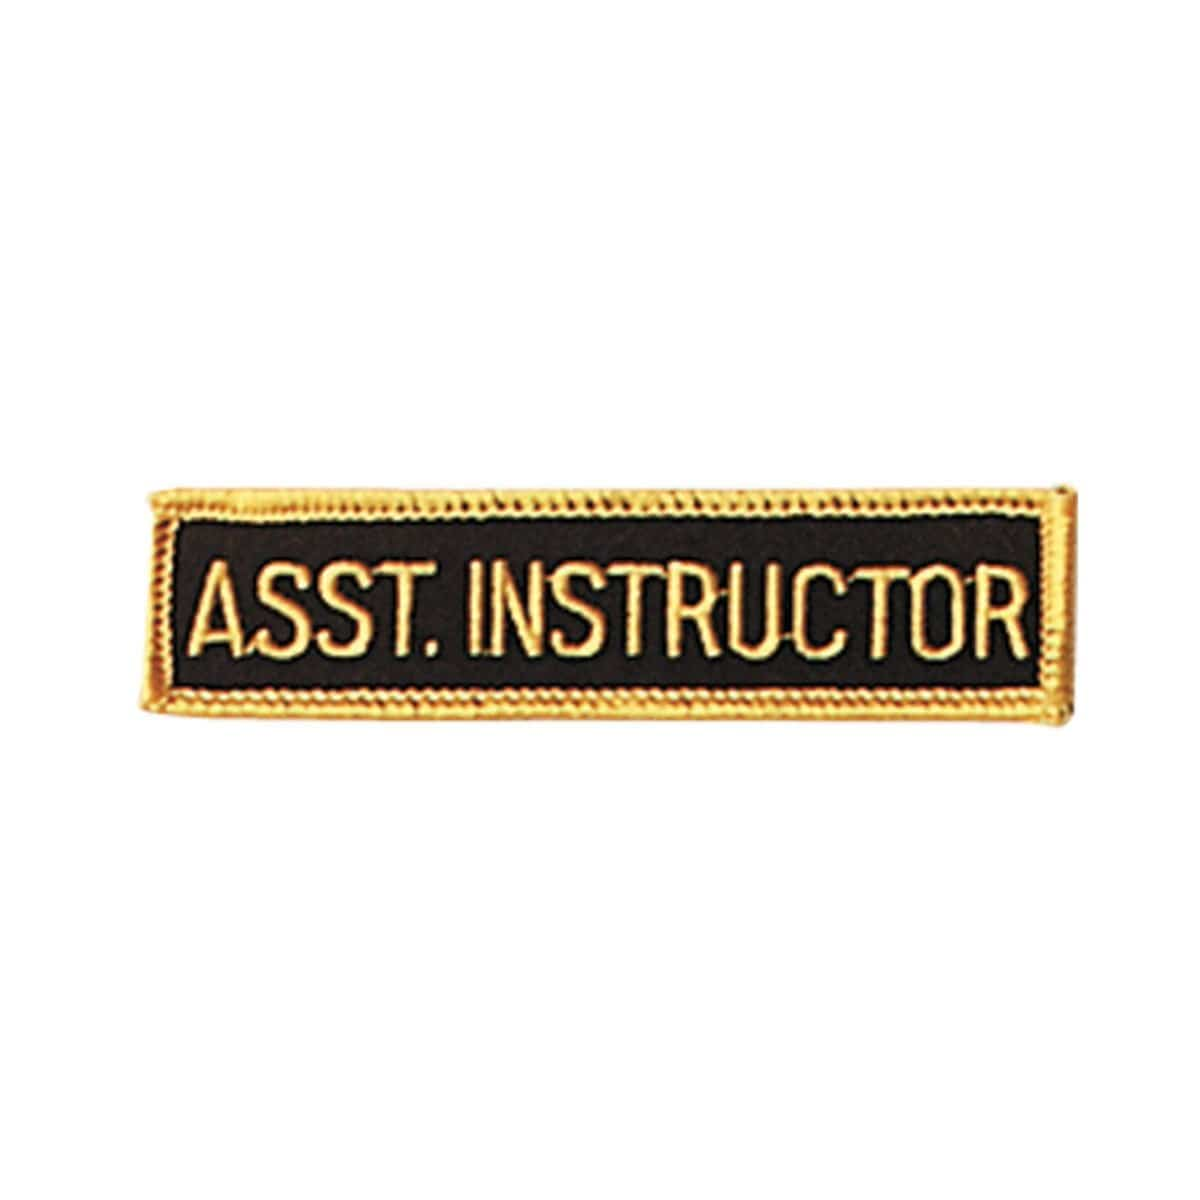 Assistant Instructor Patch c082-013-ain